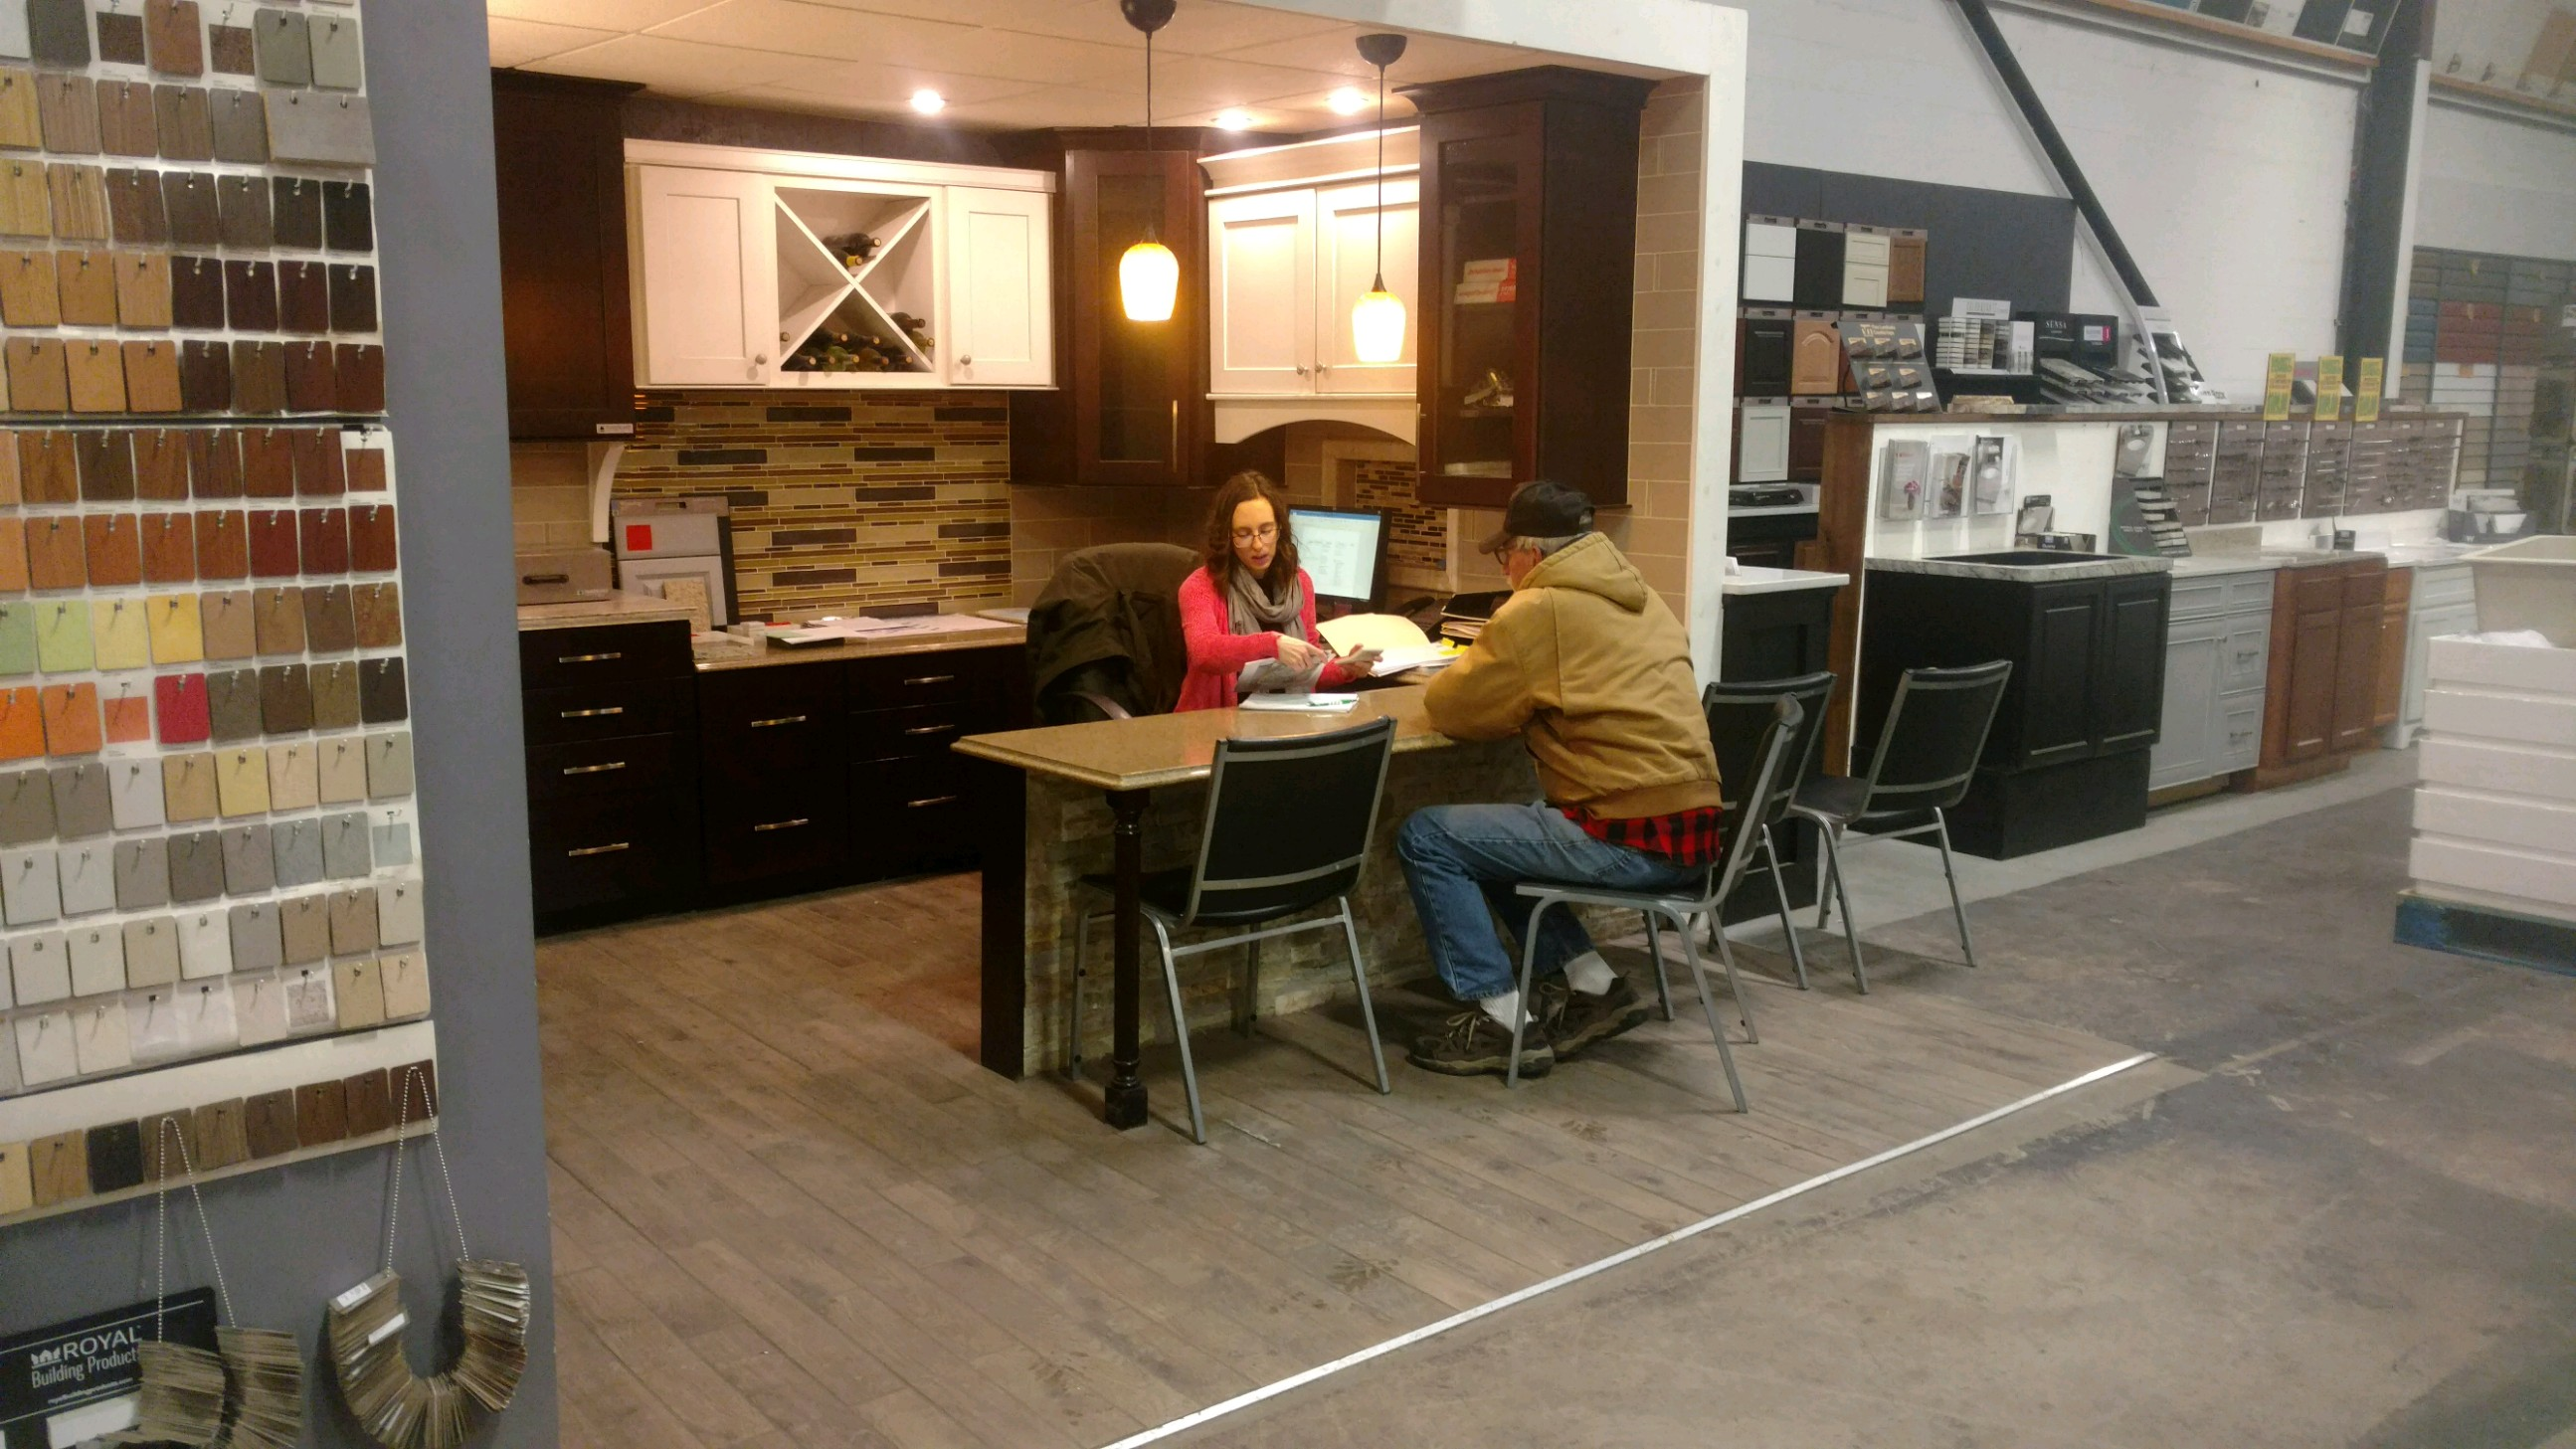 Let Us Help Make Your Dream Kitchen A Reality... Work With Our Kitchen  Design Experts To Make It Happen Today!